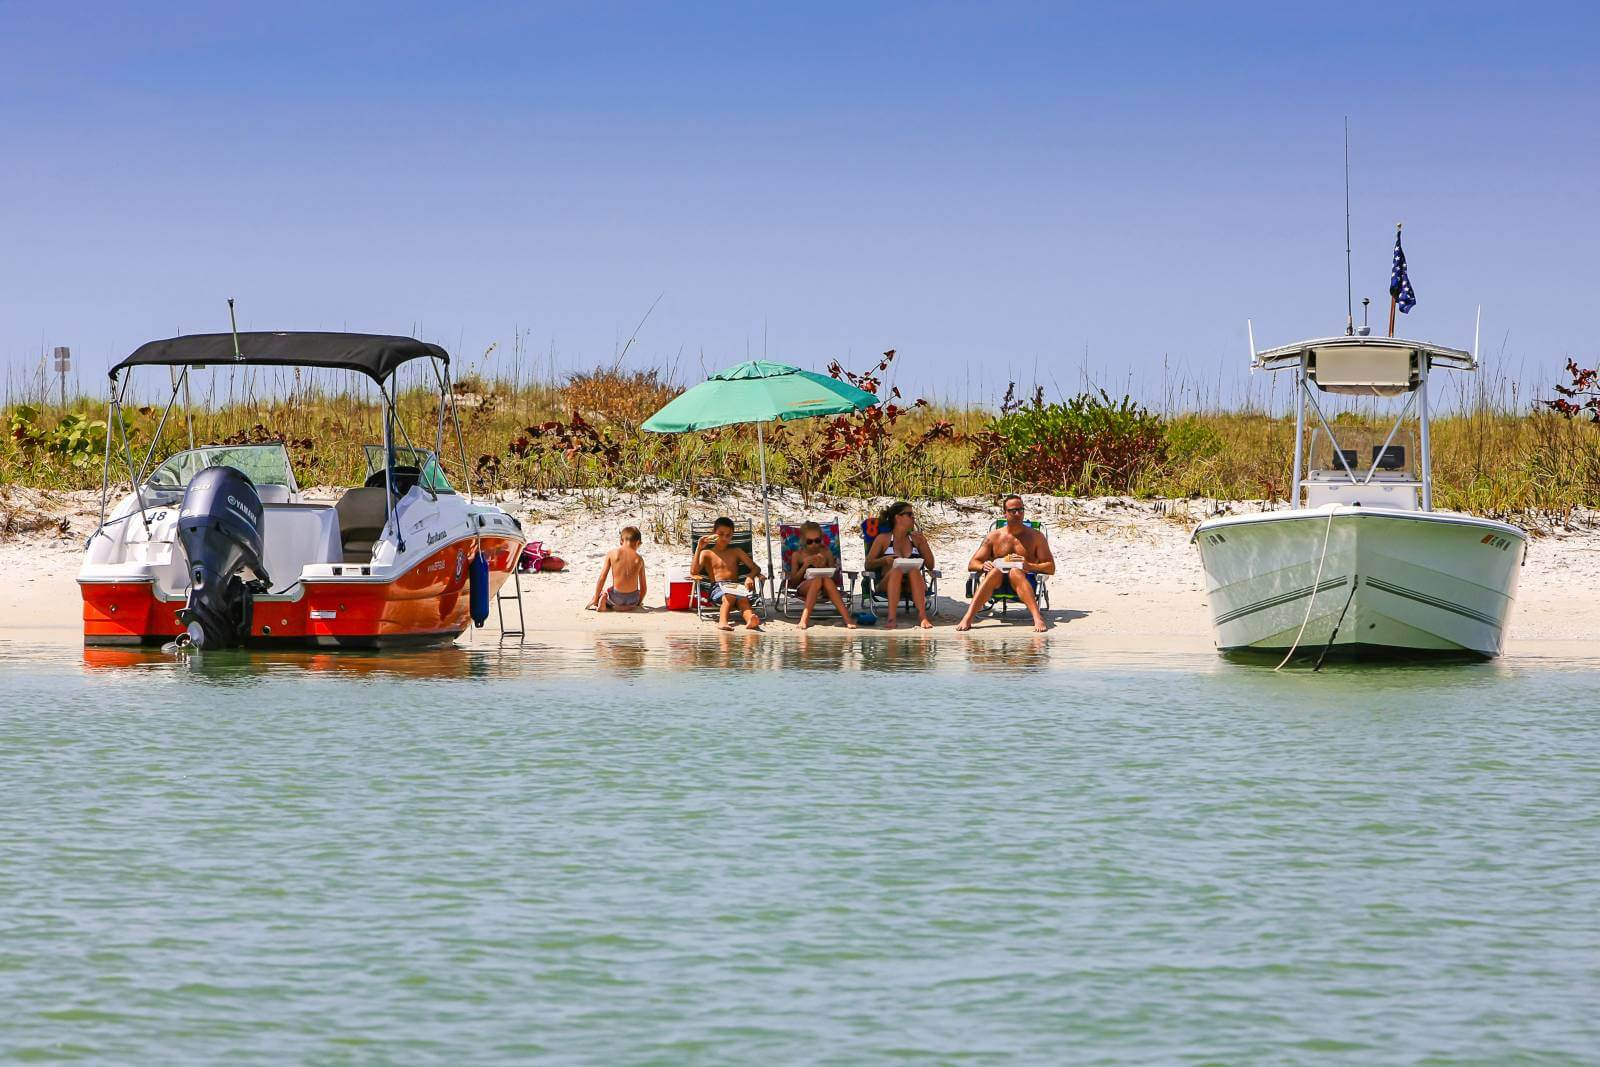 Boats mored at on the shore at Keewaydin Island near Naples and Marco Island, Florida. Photo by Chris L. Smith | Must Do Visitor Guides